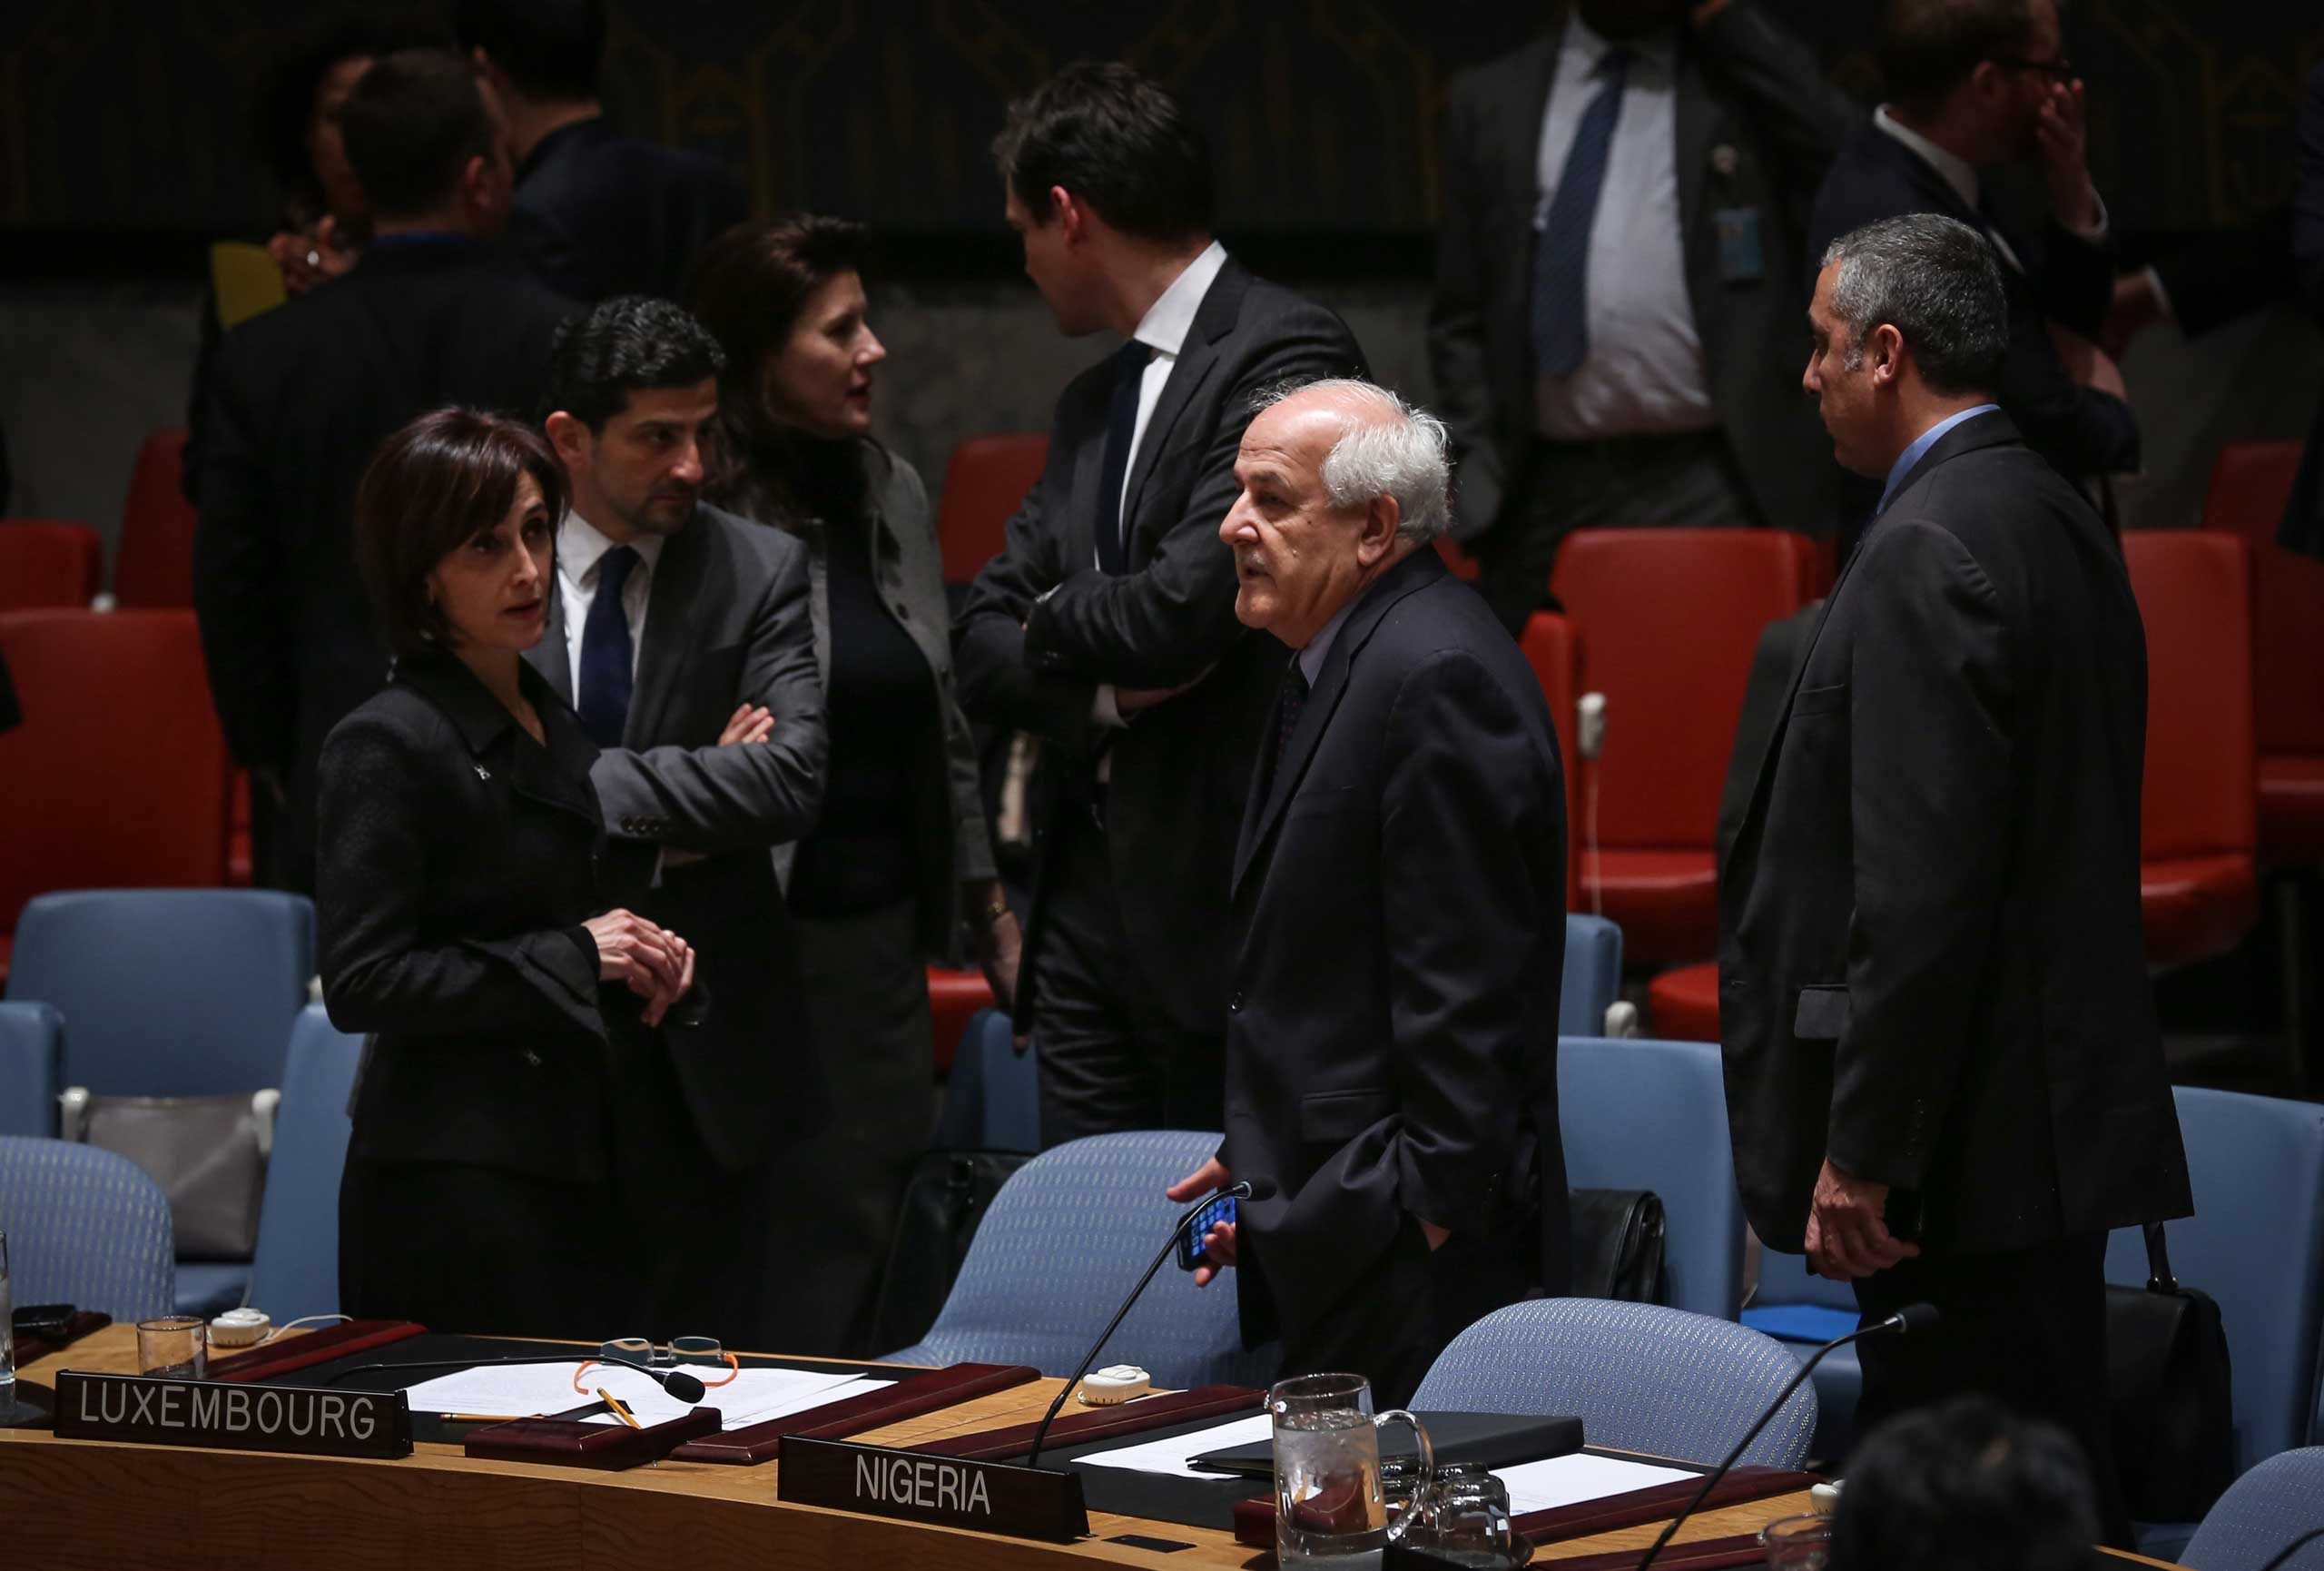 Riyad Mansour, second right, Permanent Observer of Palestine to the United Nations, is seen during the United Nations (UN) Security Council meeting in New York on Dec. 30, 2014.